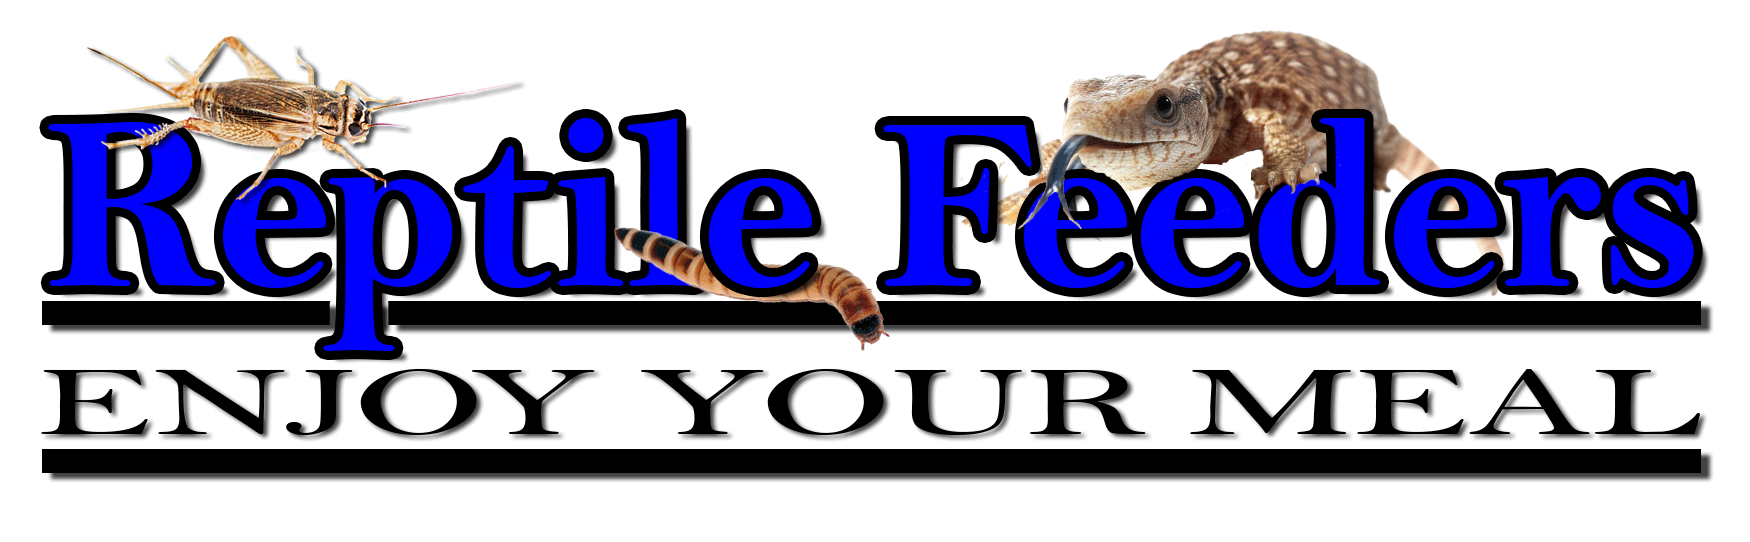 Reptile Feeders :: Enjoy Your Meal